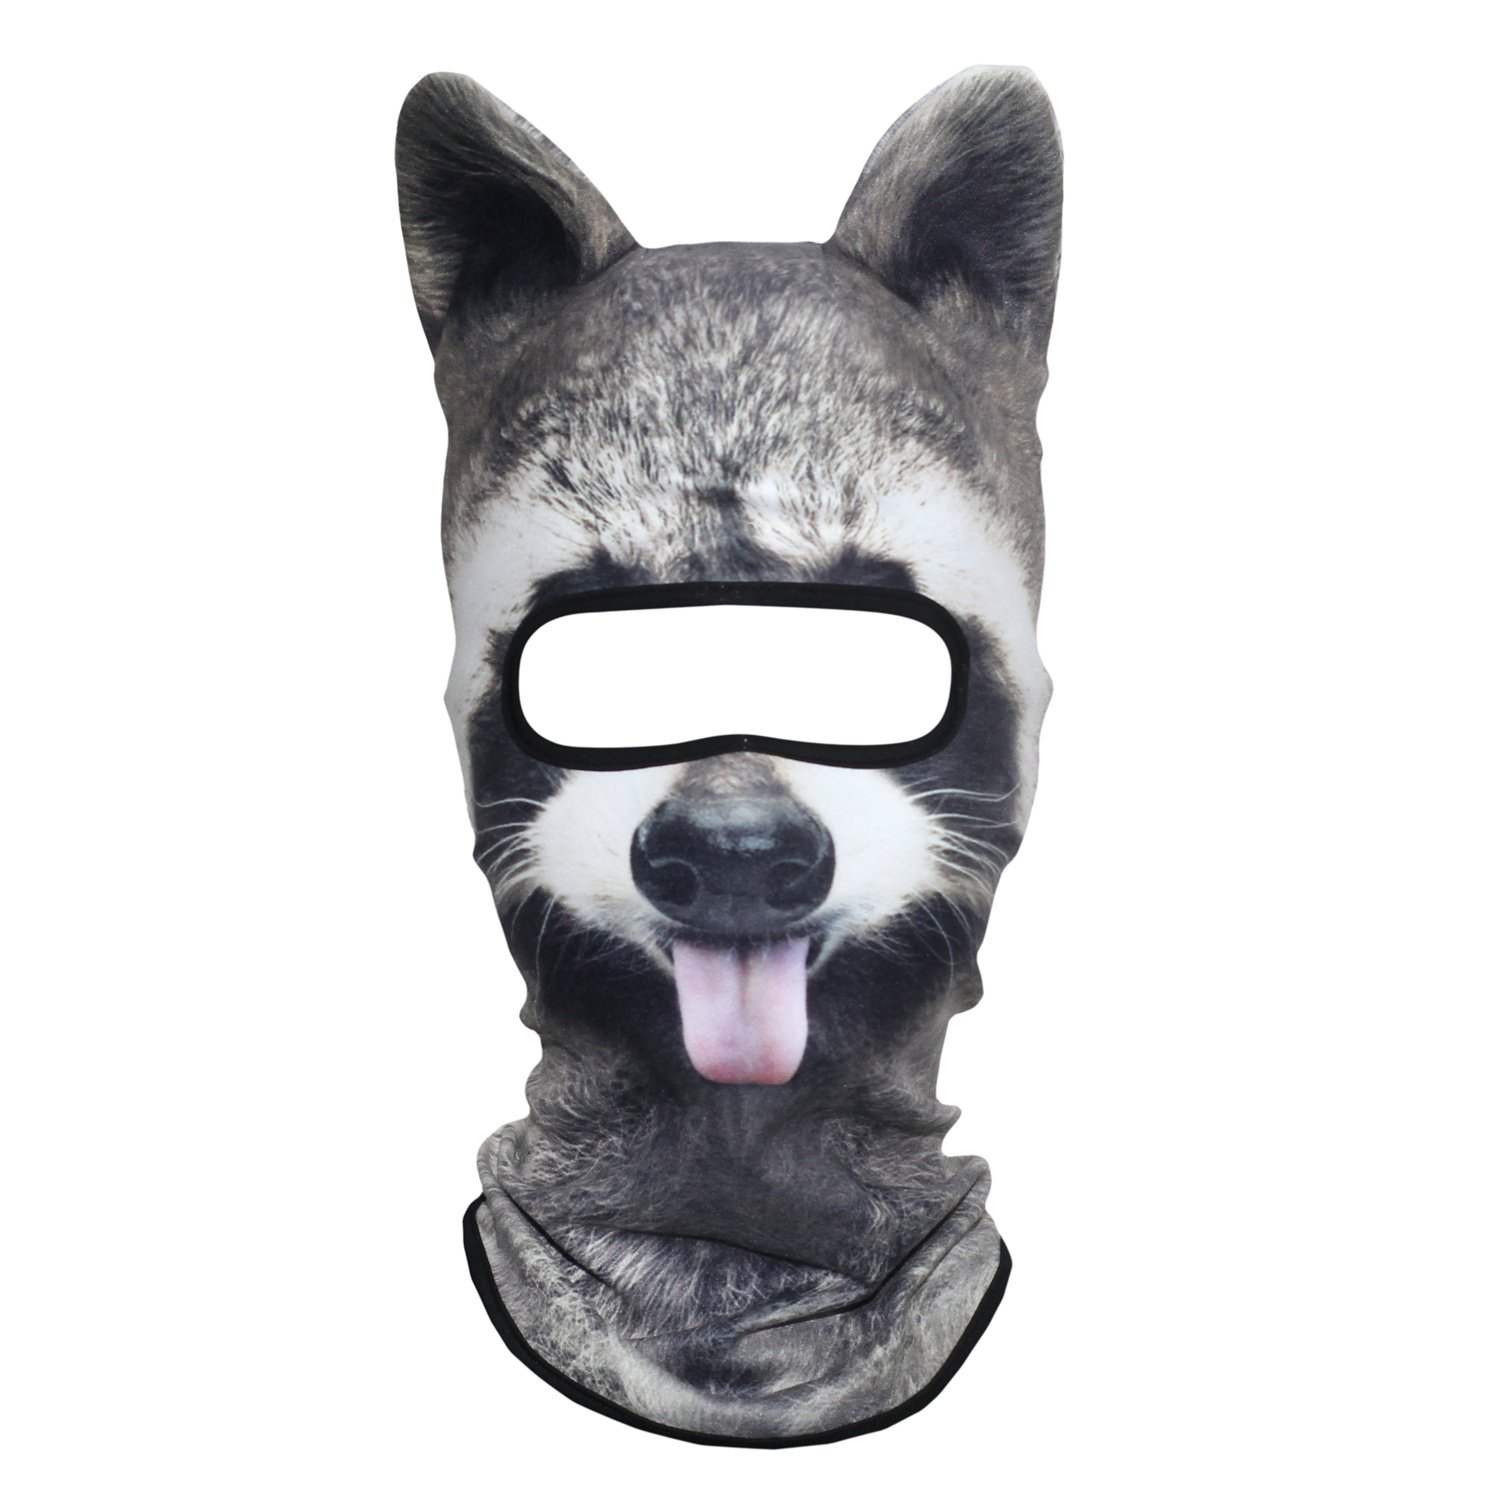 JIUSY 3D Animal Ears Fleece Thermal Hood Balaclava Neck Warmer Face Mask for Cold Weather Winter Outdoor Sport Motorcycle Cycling Riding Hunting Ski Snowboard Halloween Party Funny Raccoon MDD-17